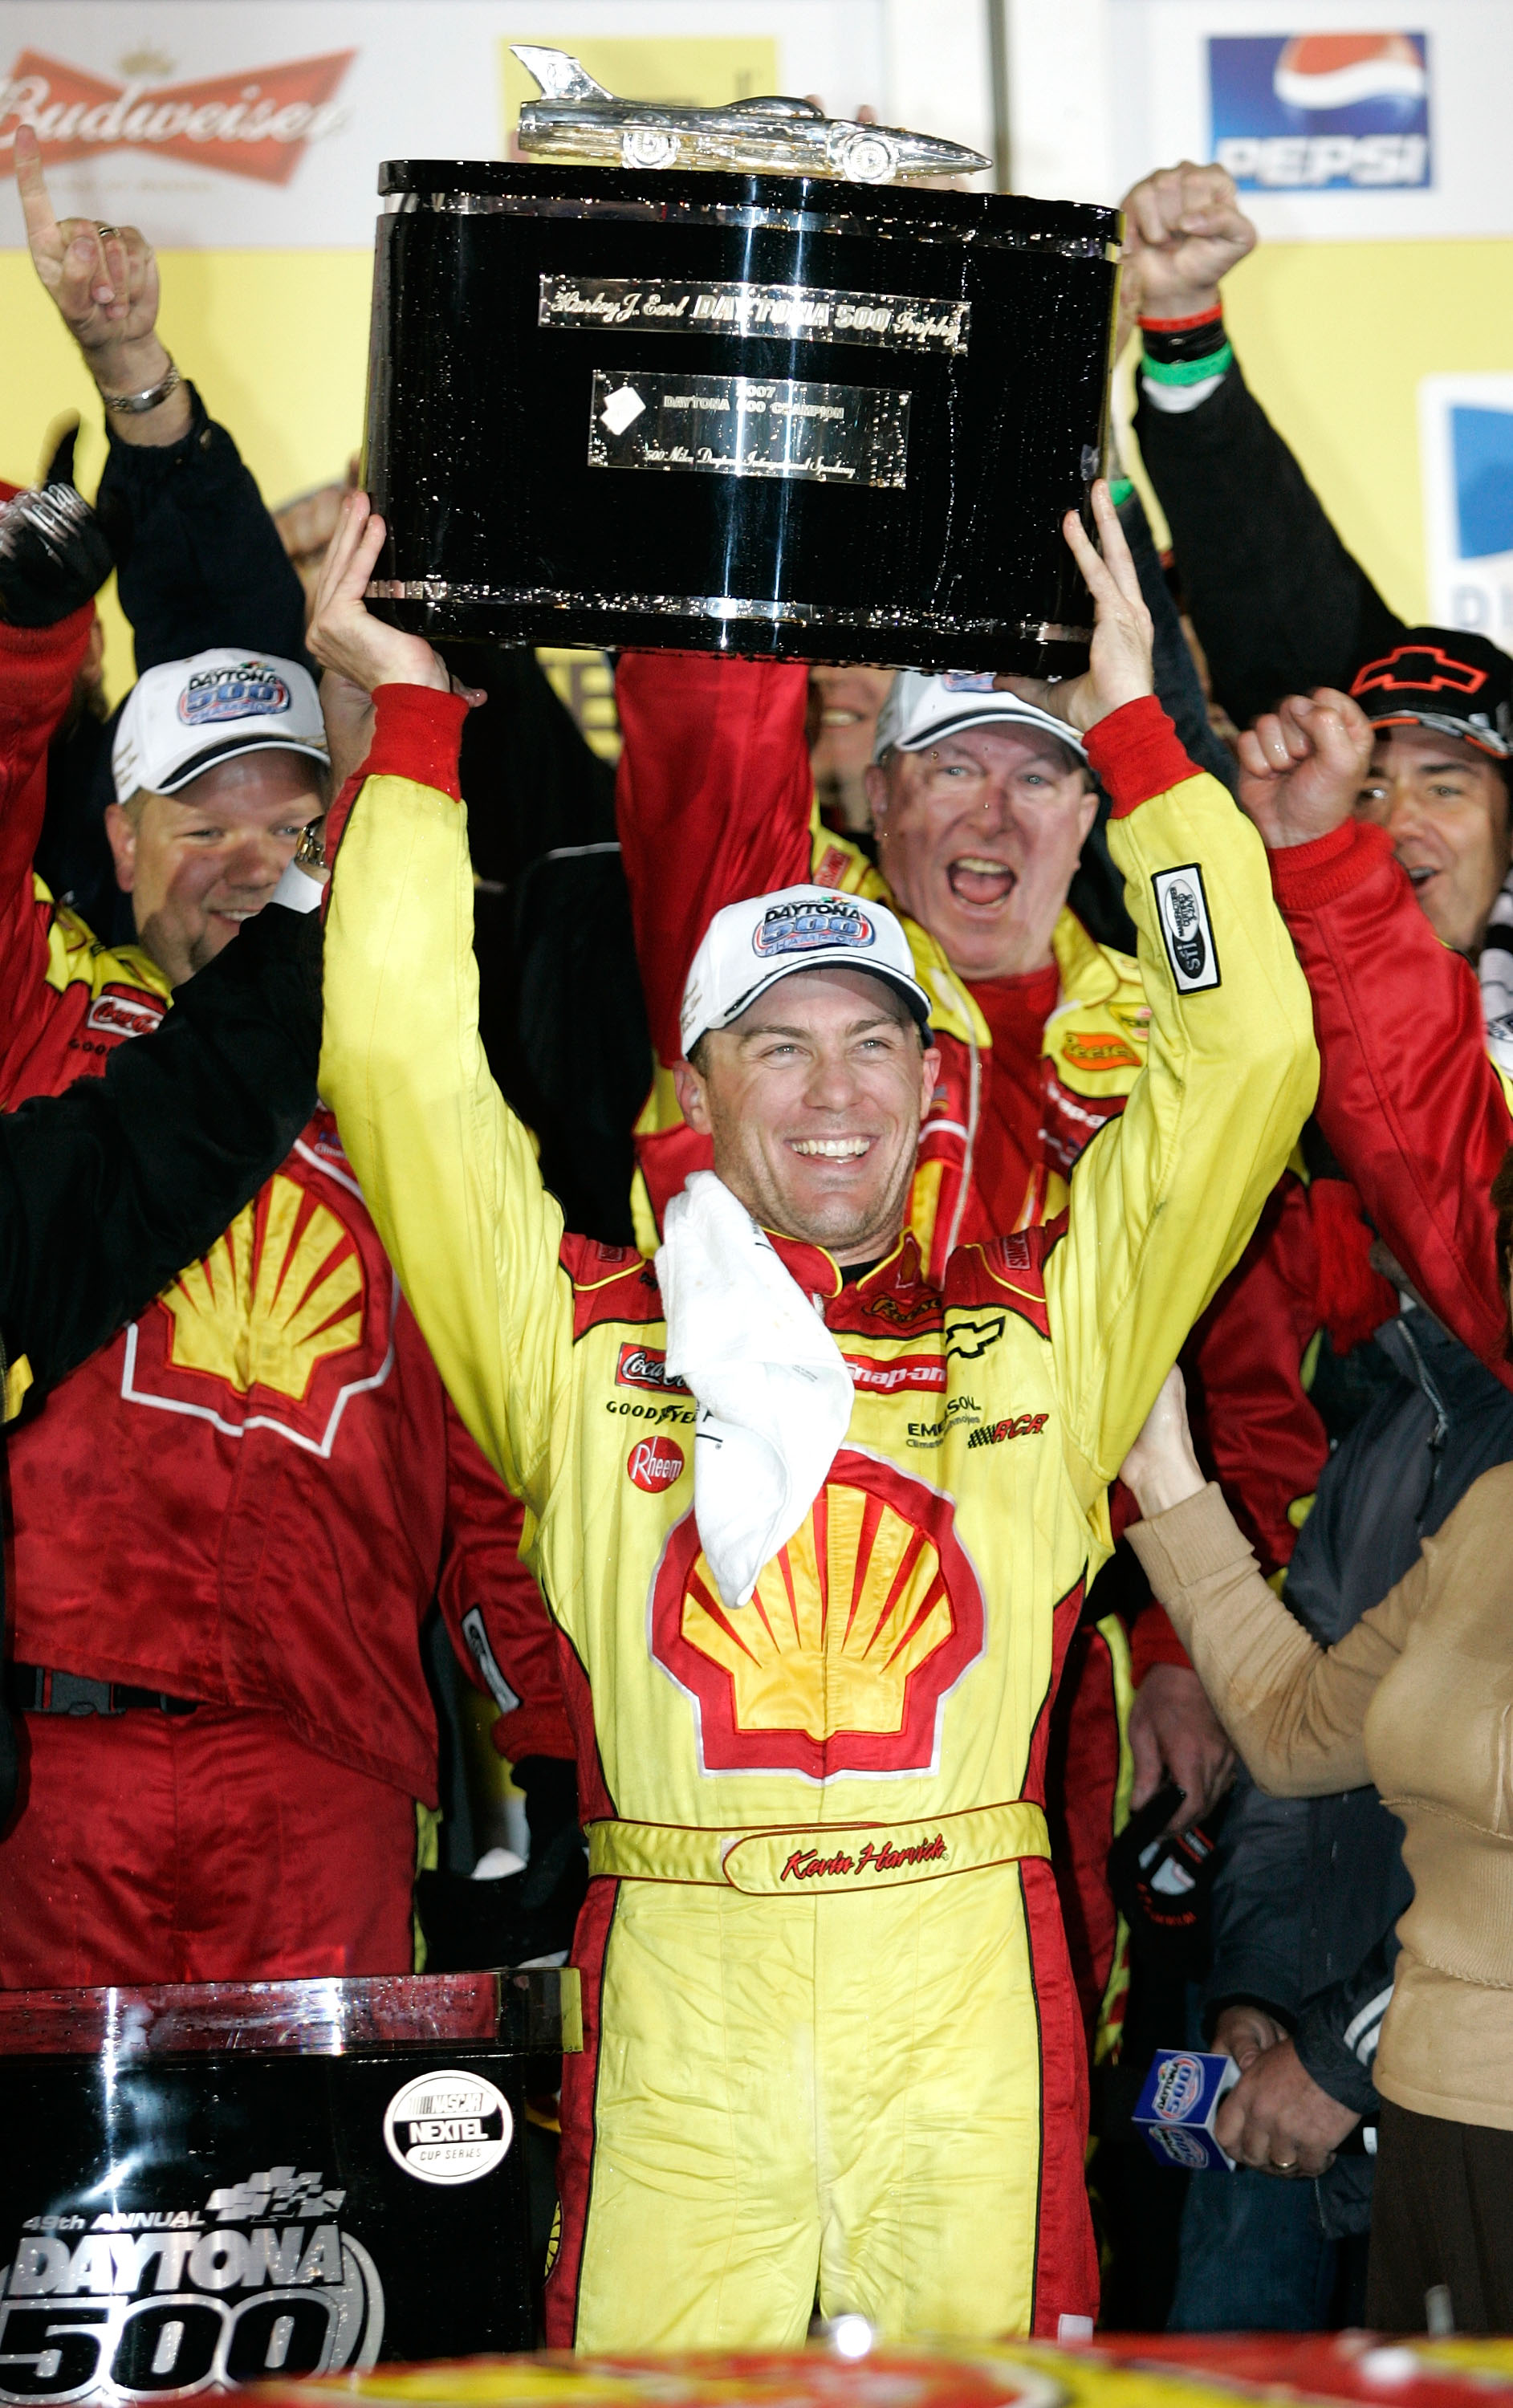 Kevin Harvick has come into his own as one of the best restrictor plate racers in NASCAR.